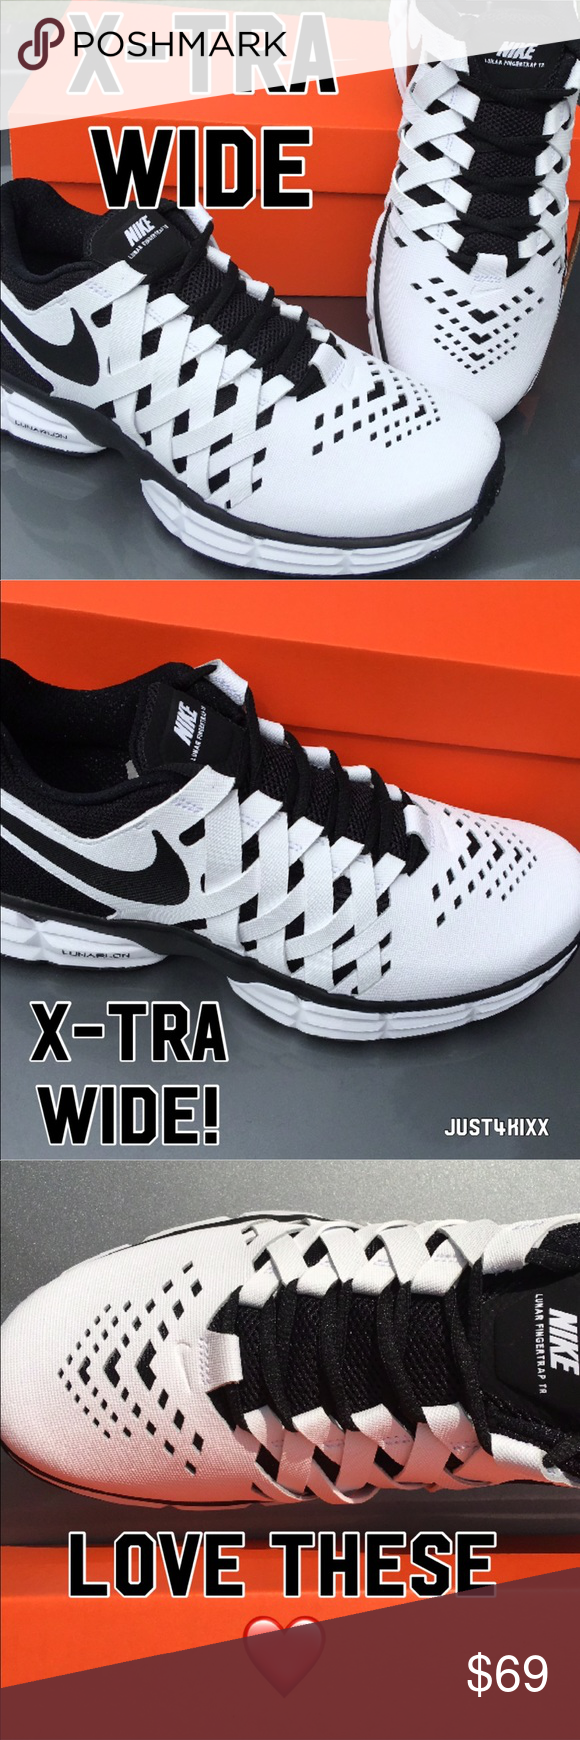 0c60a7737f7 New Nike X-Tra Wide Width Sneakers for Men😎😎😎 Info to follow once I get  my son from school Nike Shoes Sneakers